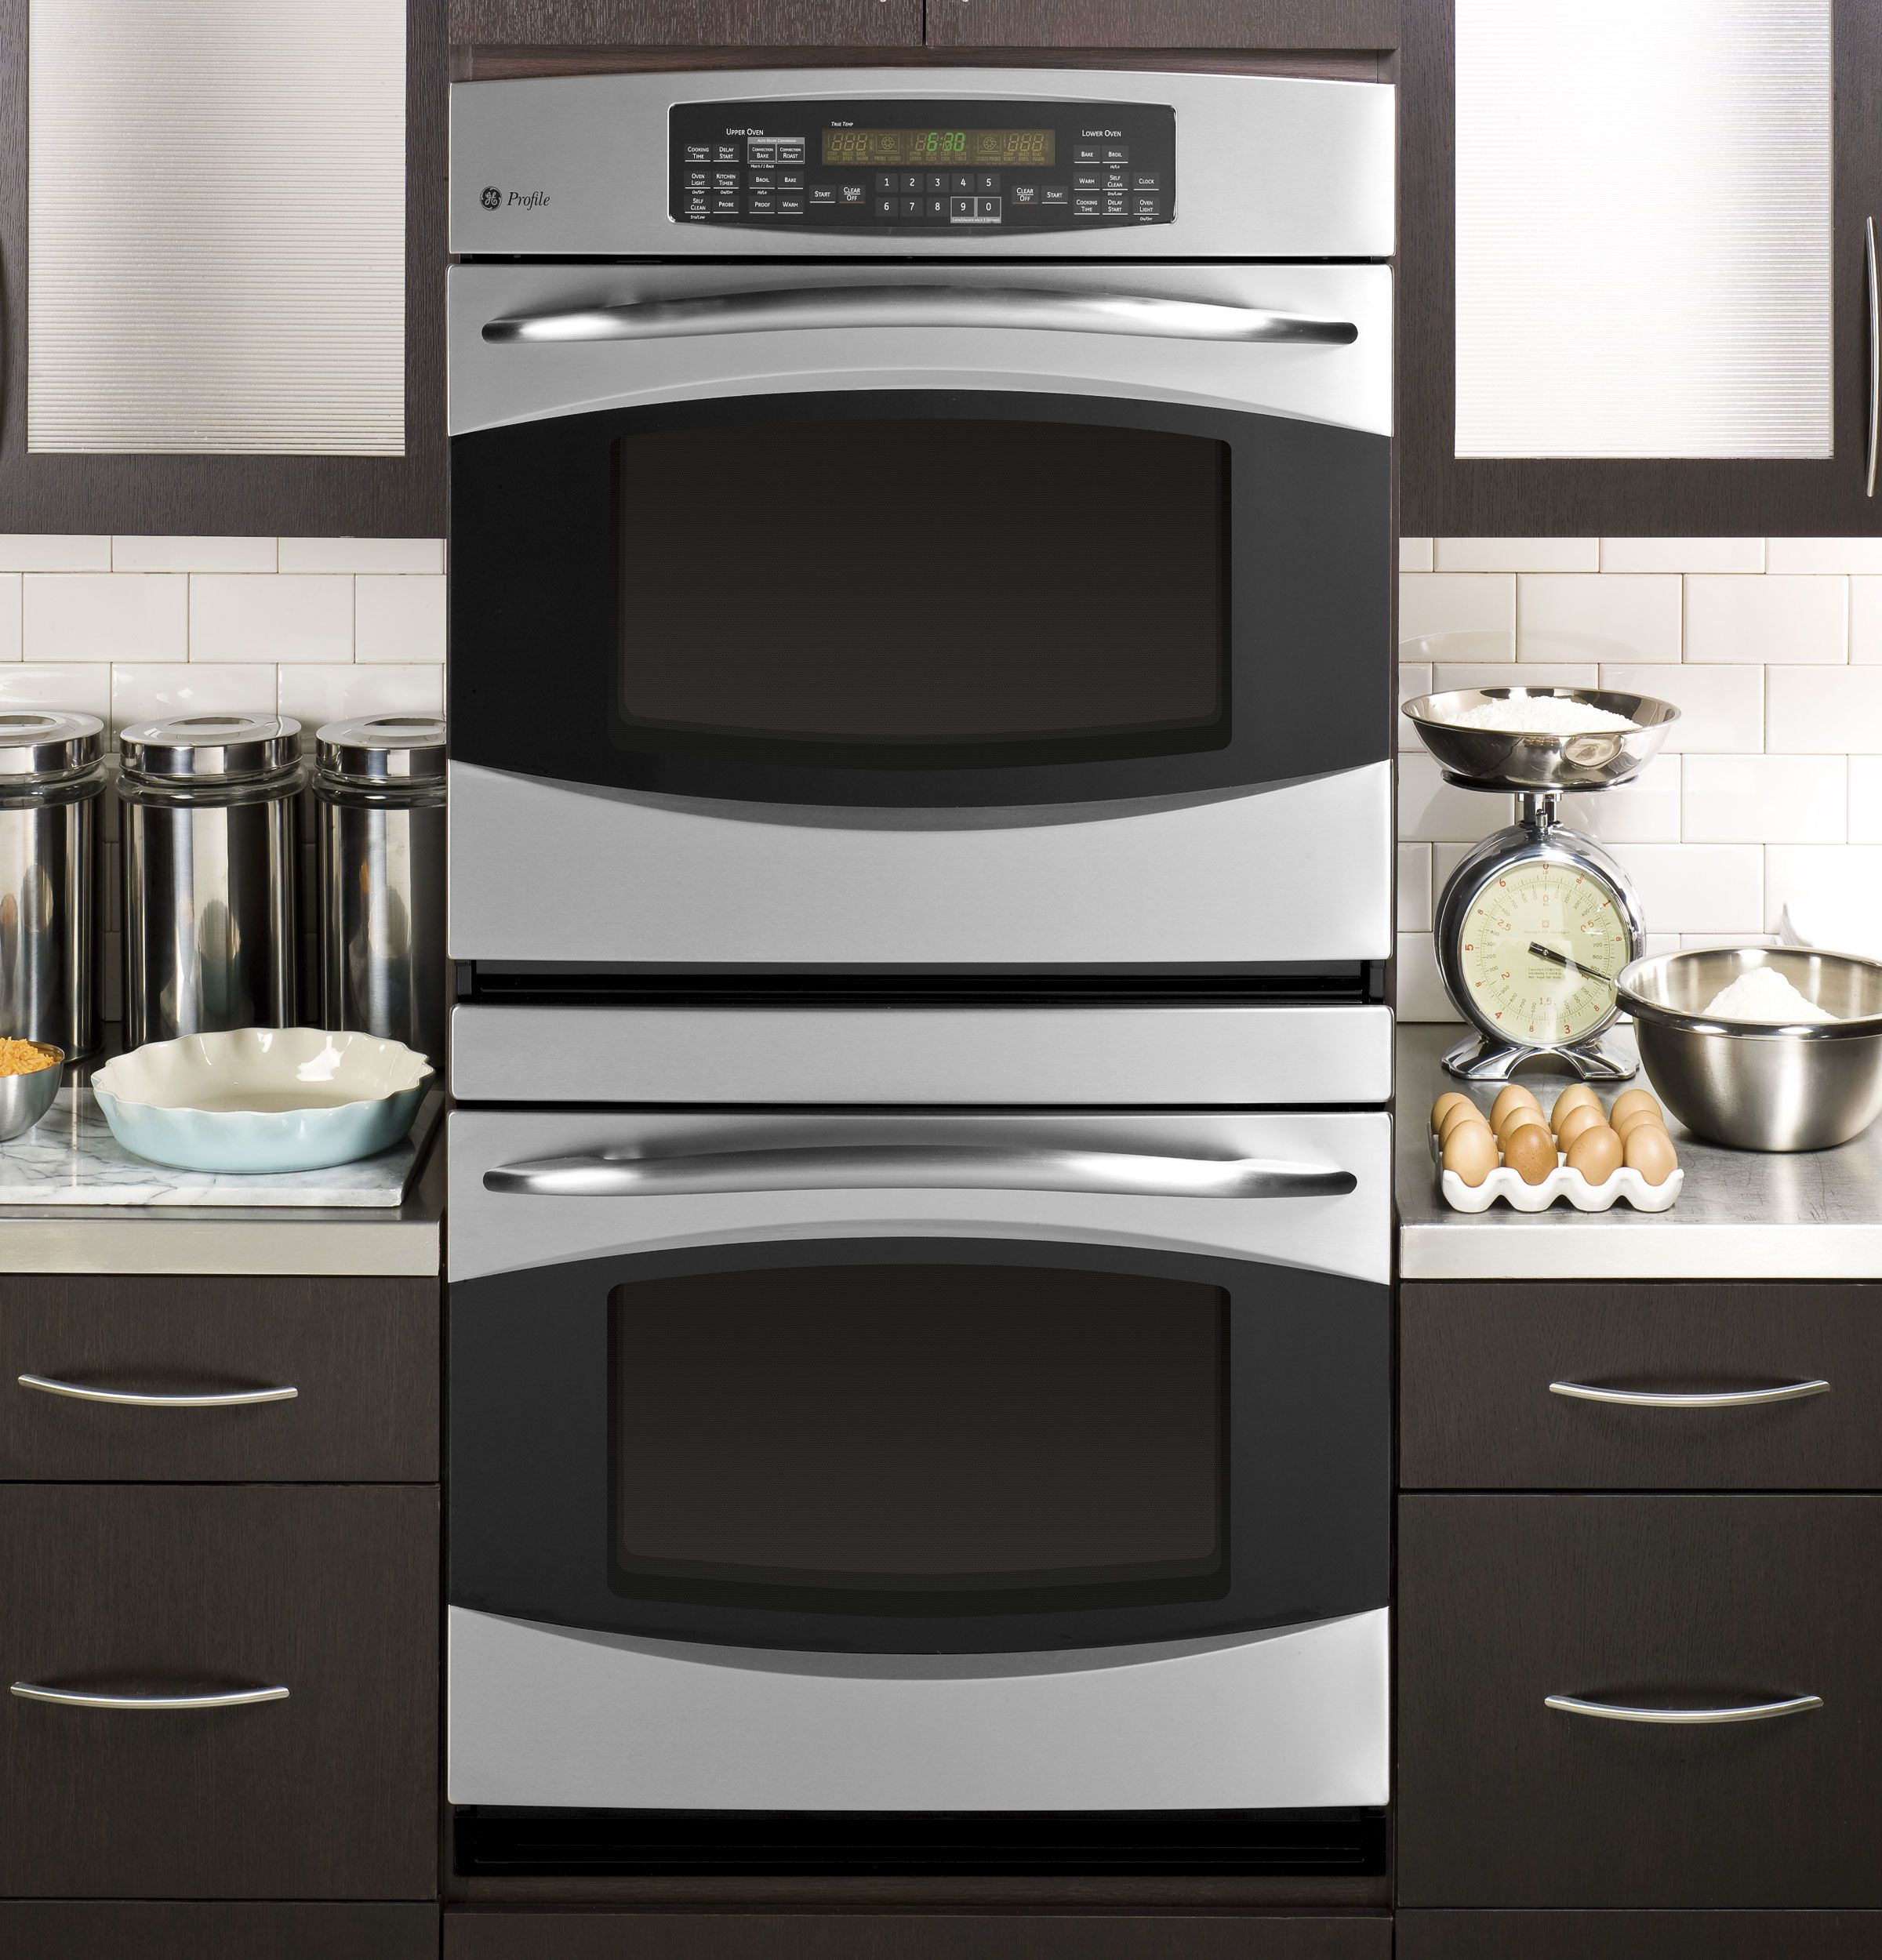 Ge Profile 30 Built In Double Convection Thermal Wall Oven Pt956srss Wall Oven Double Wall Oven Best Double Wall Ovens